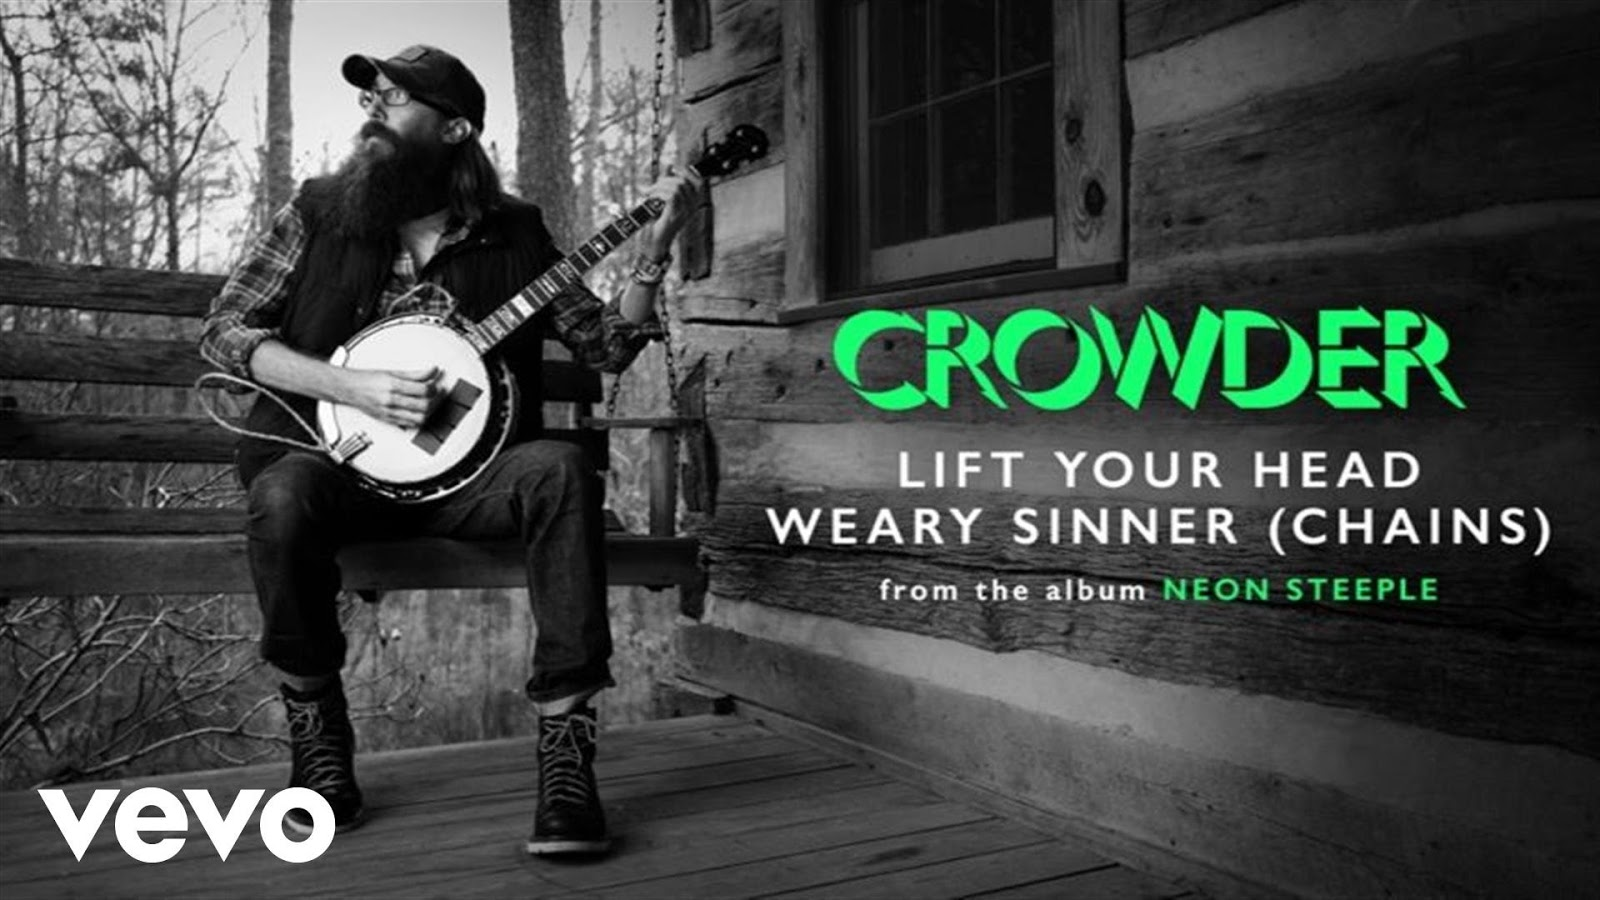 Lift Your Head Weary Sinner (Chains) - Crowder Feat